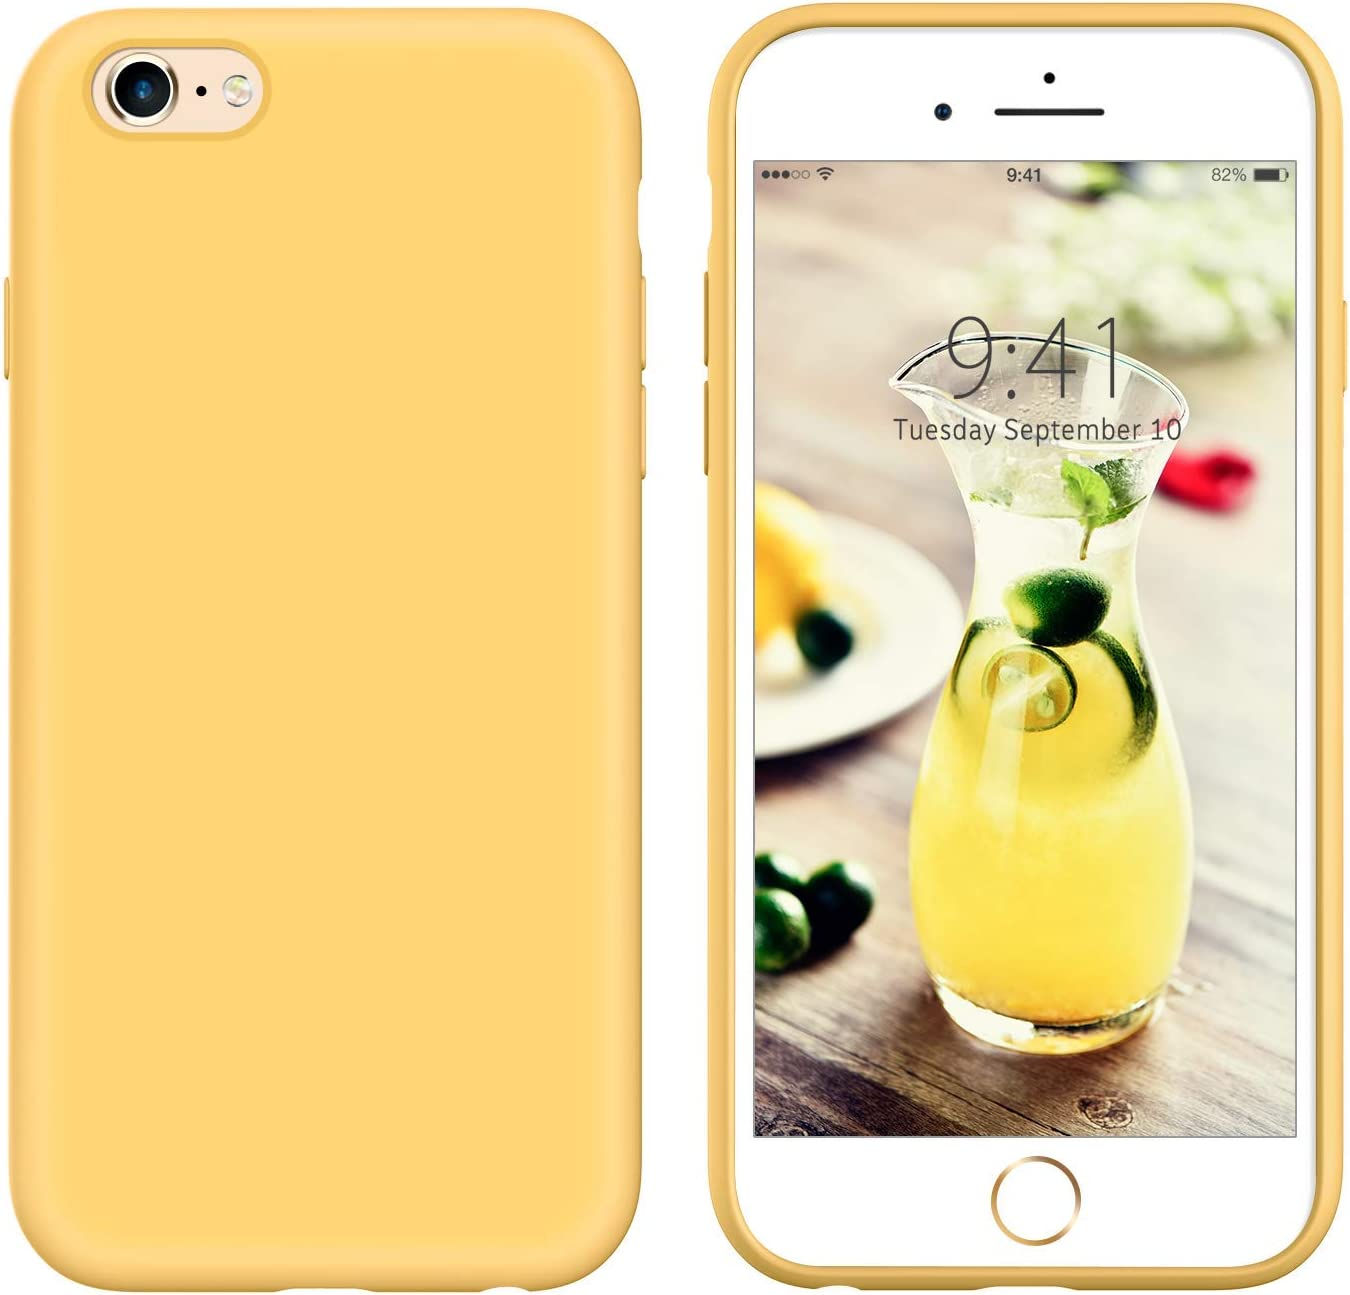 YINLAI iPhone 6S Plus Case iPhone 6 Plus Case Liquid Silicone Soft Gel Rubber Cover Slim Shockproof Protective Grip Phone Cases for iPhone 6S ...